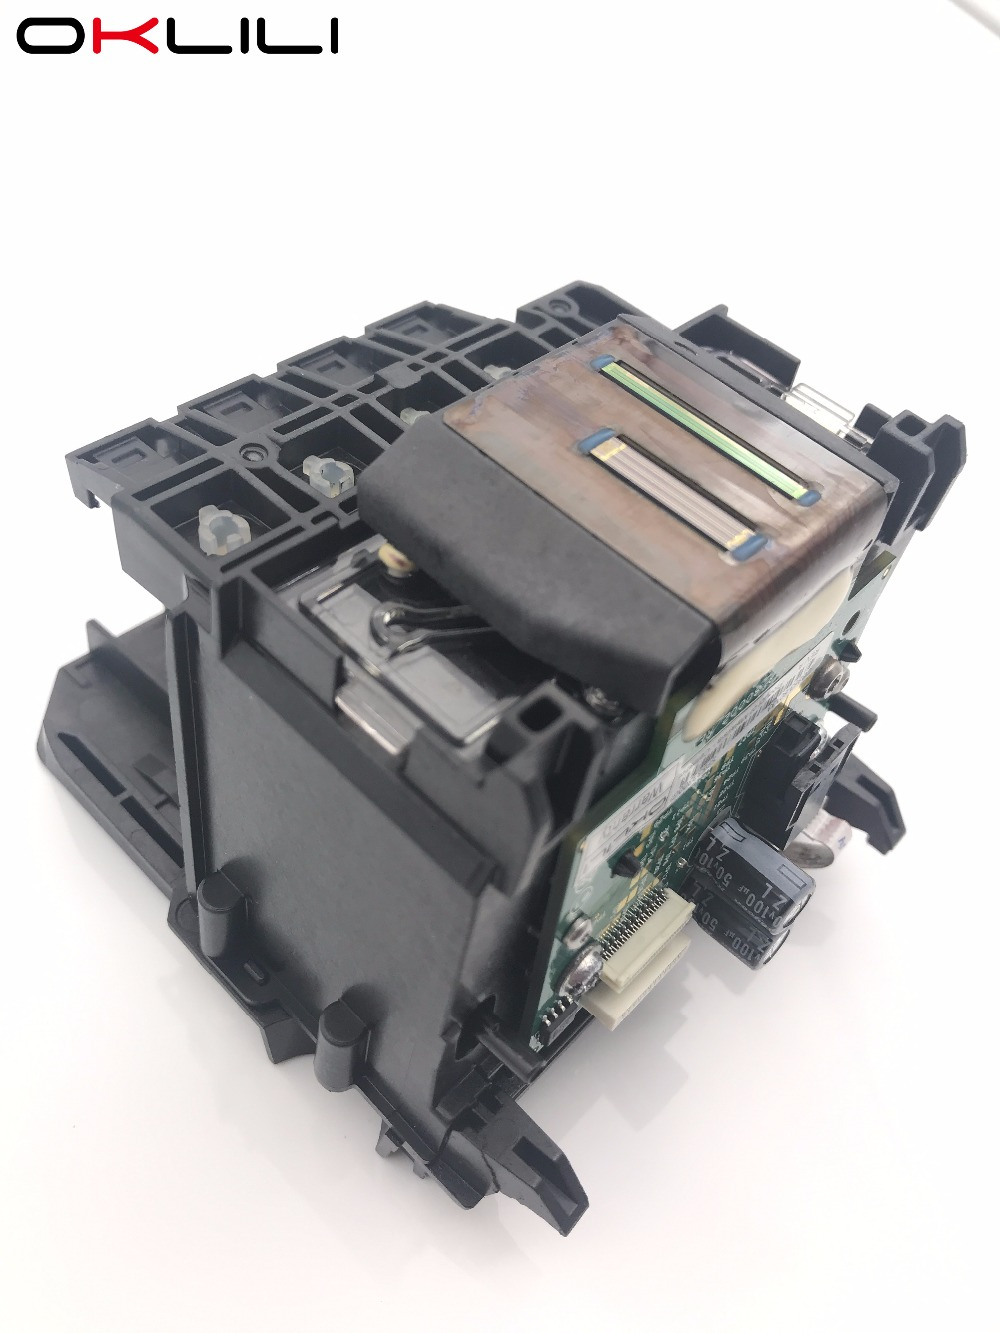 1X CB863-80002A 932 933 932XL 933XL Printhead printer HP Officejet - Ofis elektronikası - Fotoqrafiya 5